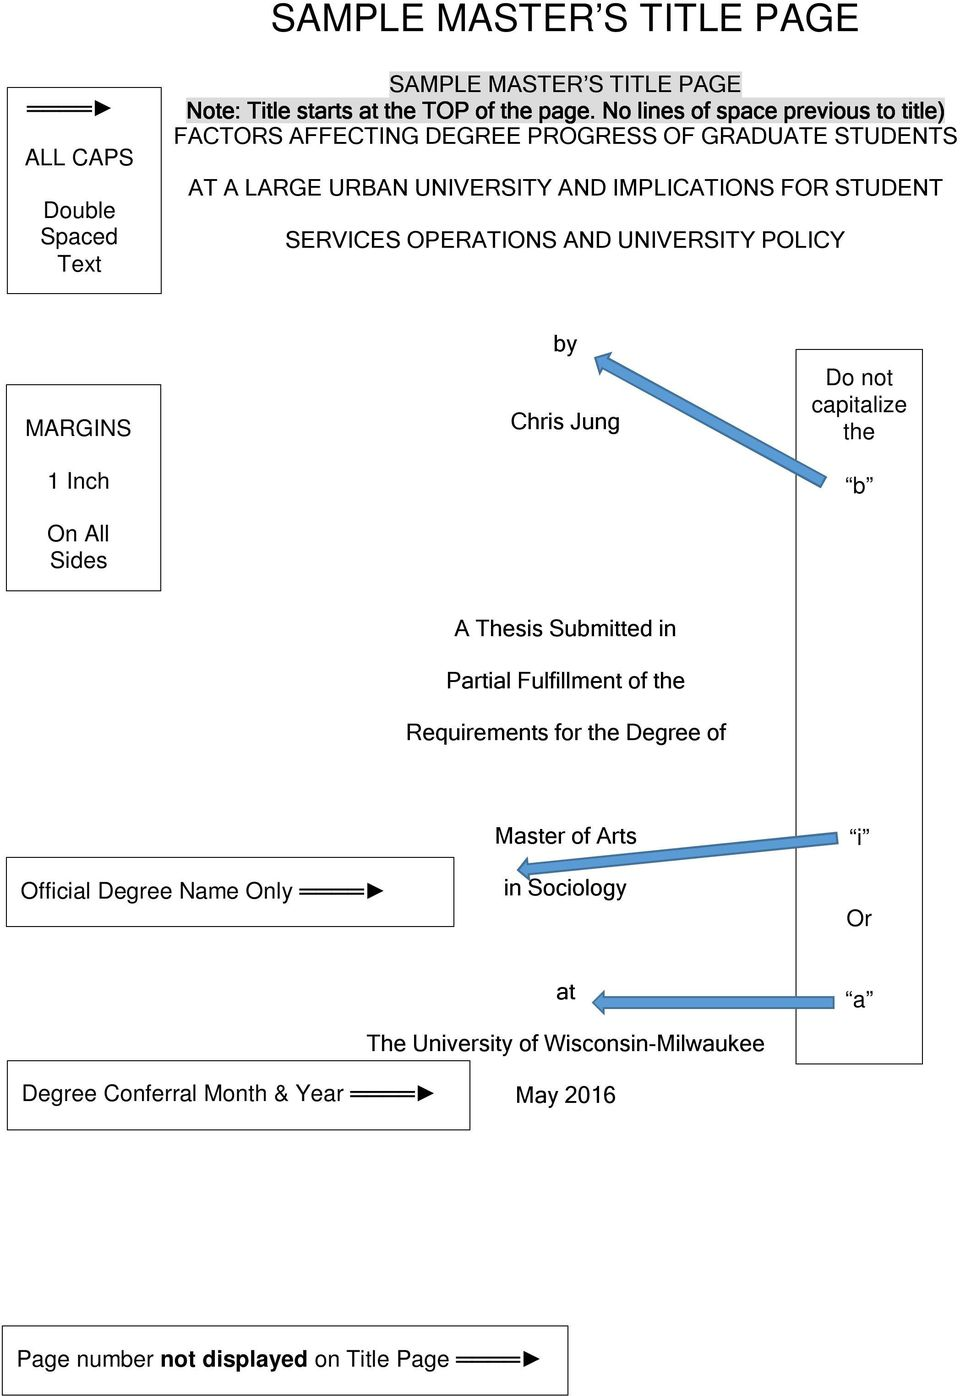 OPERATIONS AND UNIVERSITY POLICY MARGINS 1 Inch On All Sides by Chris Jung Do not capitalize the b A Thesis Submitted in Partial Fulfillment of the Requirements